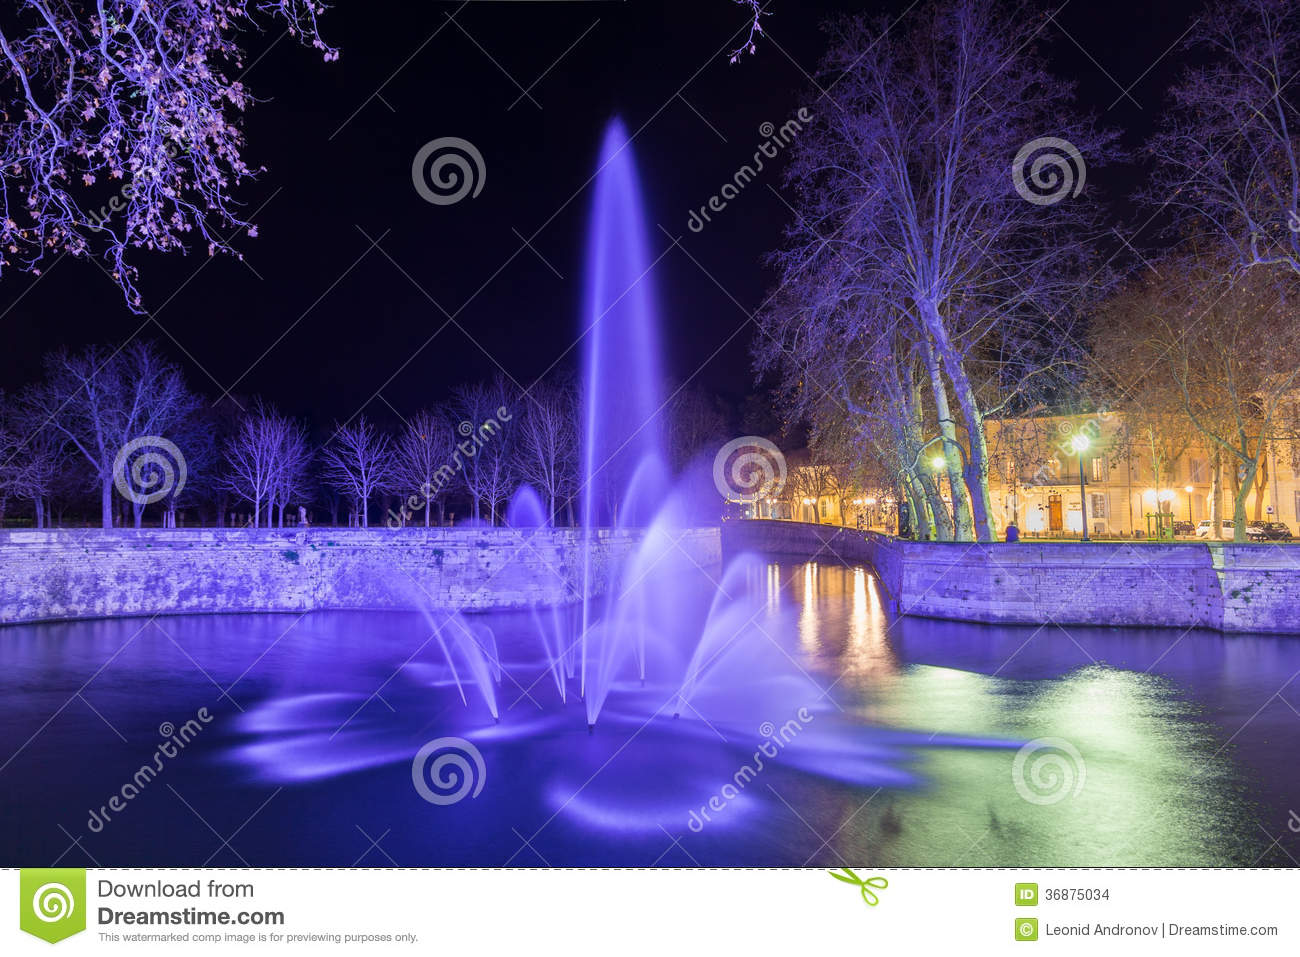 Fontaine nimes france stock photo 53782920 - Jardin de la fontaine nimes limoges ...